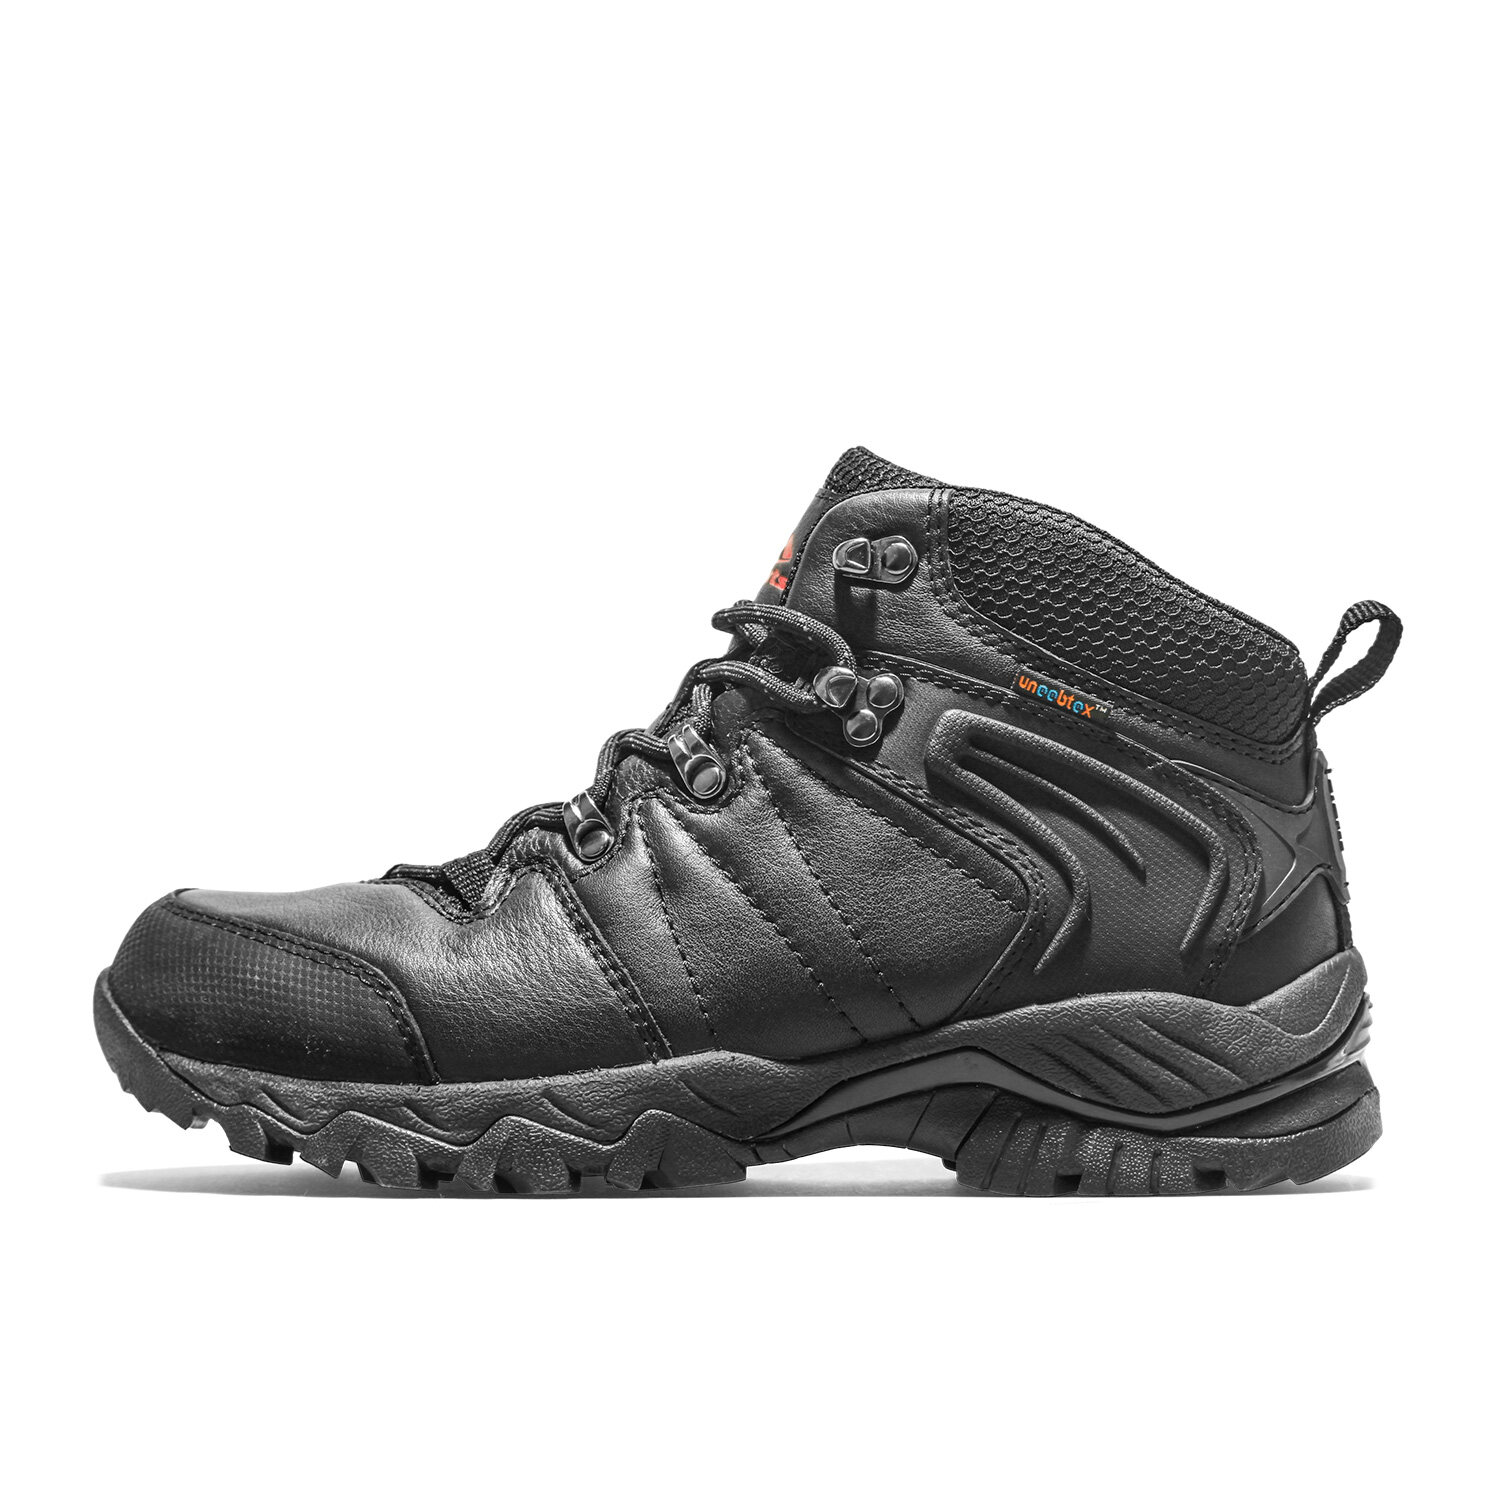 ad9947cbd11 Clorts Men And Women Hiker Leather GTX Waterproof Hiking Boot Outdoor  Backpacking Shoe HKM822D